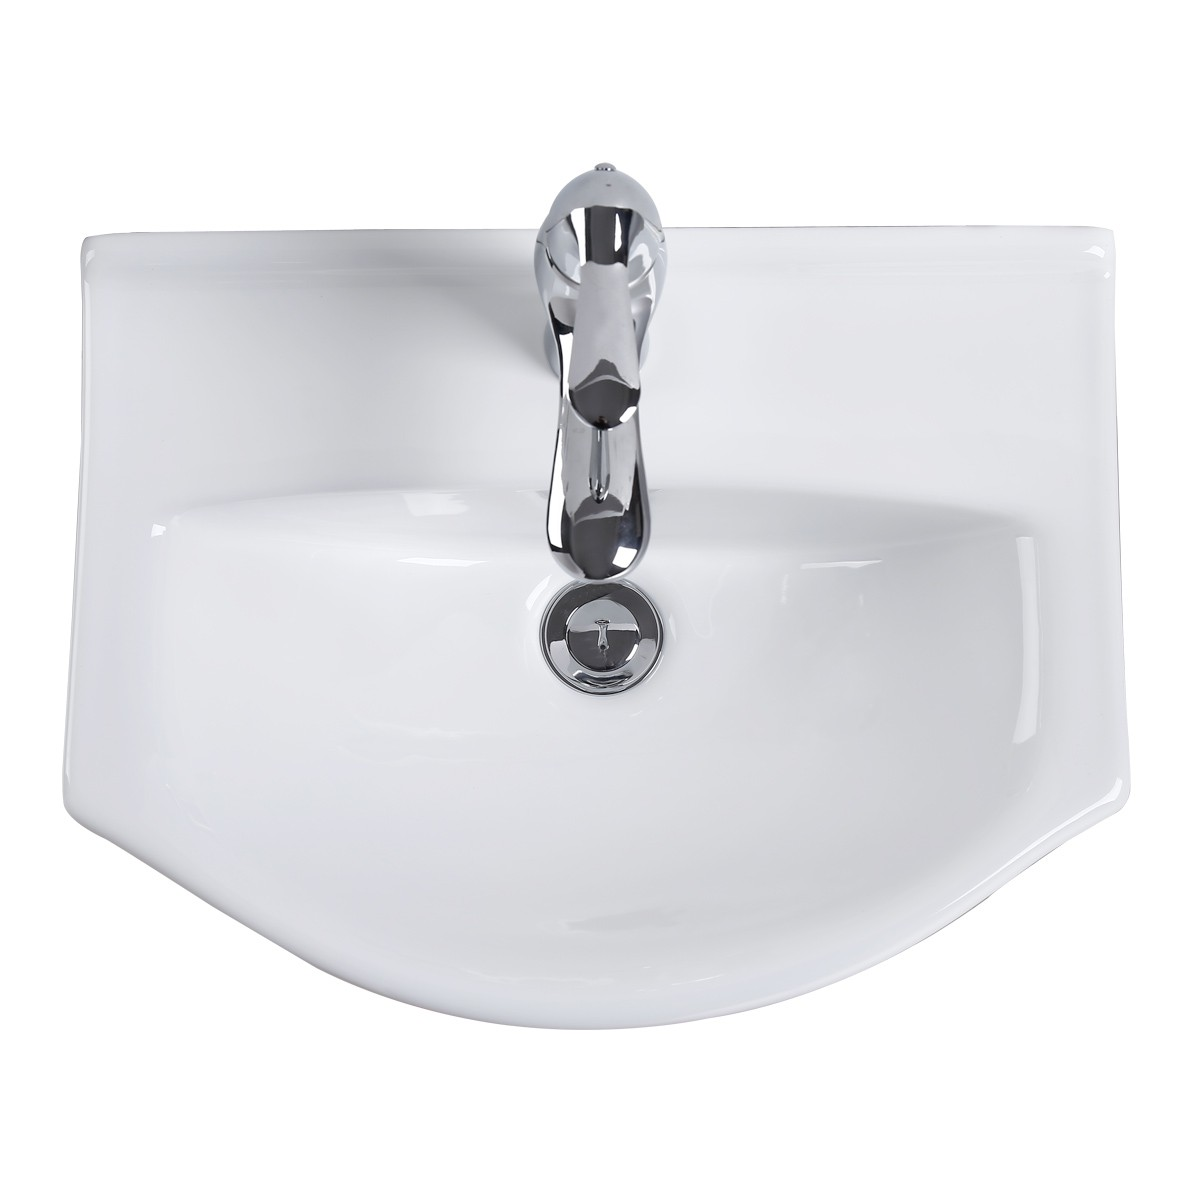 Small Wall Mount Bathroom Sink with Stainless Steel Towel Bar Small Wall Mount Bathroom Sink Wall Mount Bathroom Sink White Bathroom Sink Faucet Drain Combo